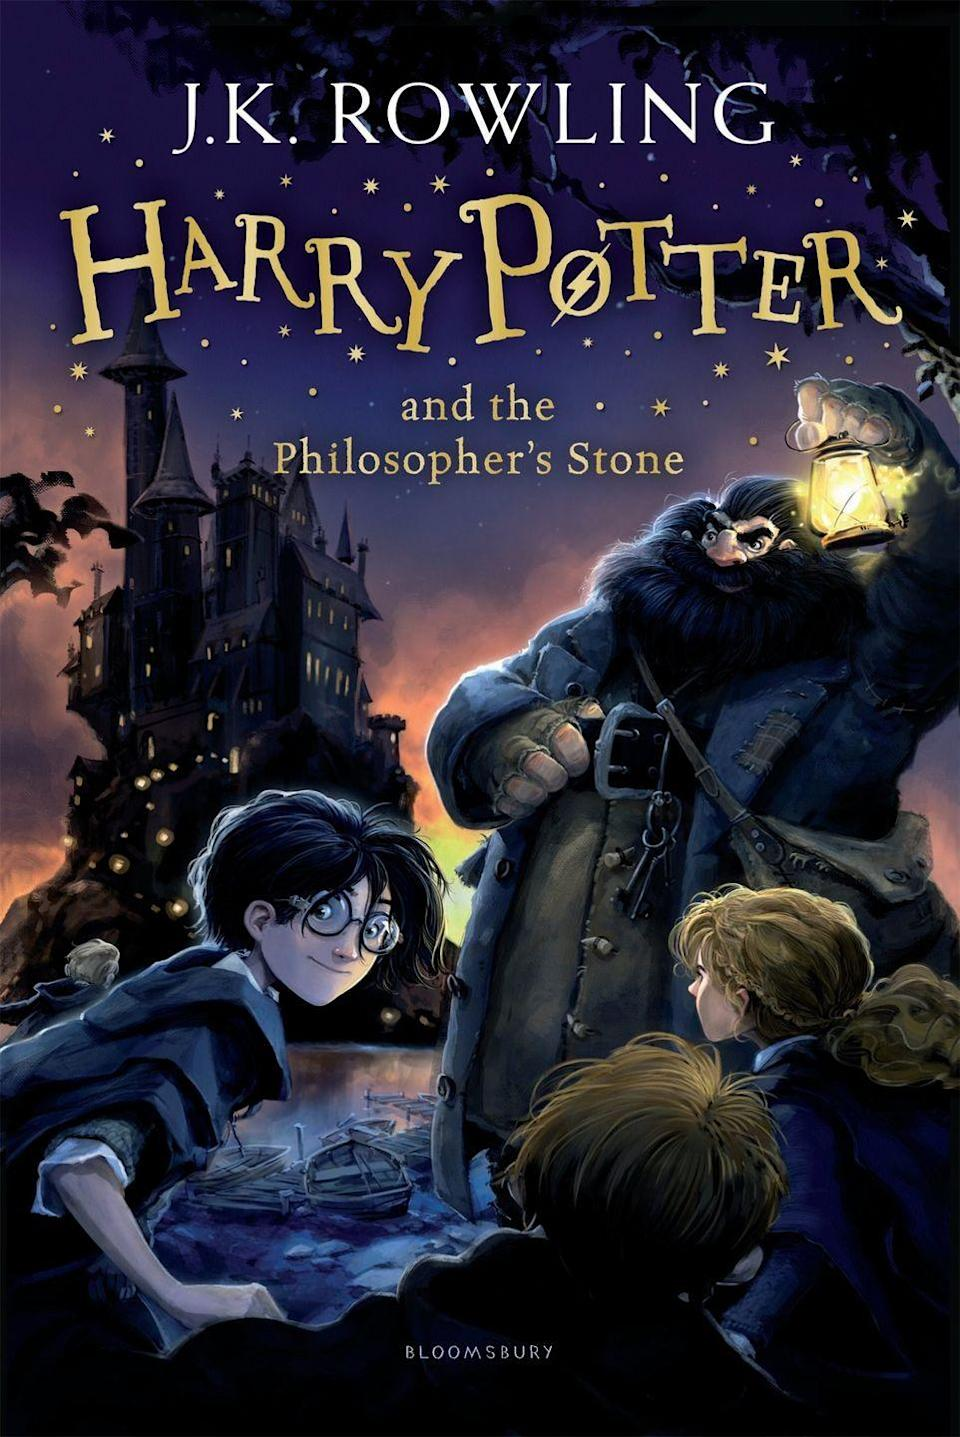 "<p>Harry Potter and the Philosopher's Stone is the first book in J.K. Rowling's Harry Potter series. The series follows Potter as he leaves his muggle (non-wizarding) family to join the Hogwarts School of Witchcraft and Wizardry with Hermione Granger and Ron Weasley. And before you ask, no it's not just for children.</p><p><a class=""link rapid-noclick-resp"" href=""https://www.amazon.co.uk/Harry-Potter-Philosophers-Stone/dp/1408855658?tag=hearstuk-yahoo-21&ascsubtag=%5Bartid%7C1921.g.32141605%5Bsrc%7Cyahoo-uk"" rel=""nofollow noopener"" target=""_blank"" data-ylk=""slk:SHOP NOW"">SHOP NOW</a></p>"